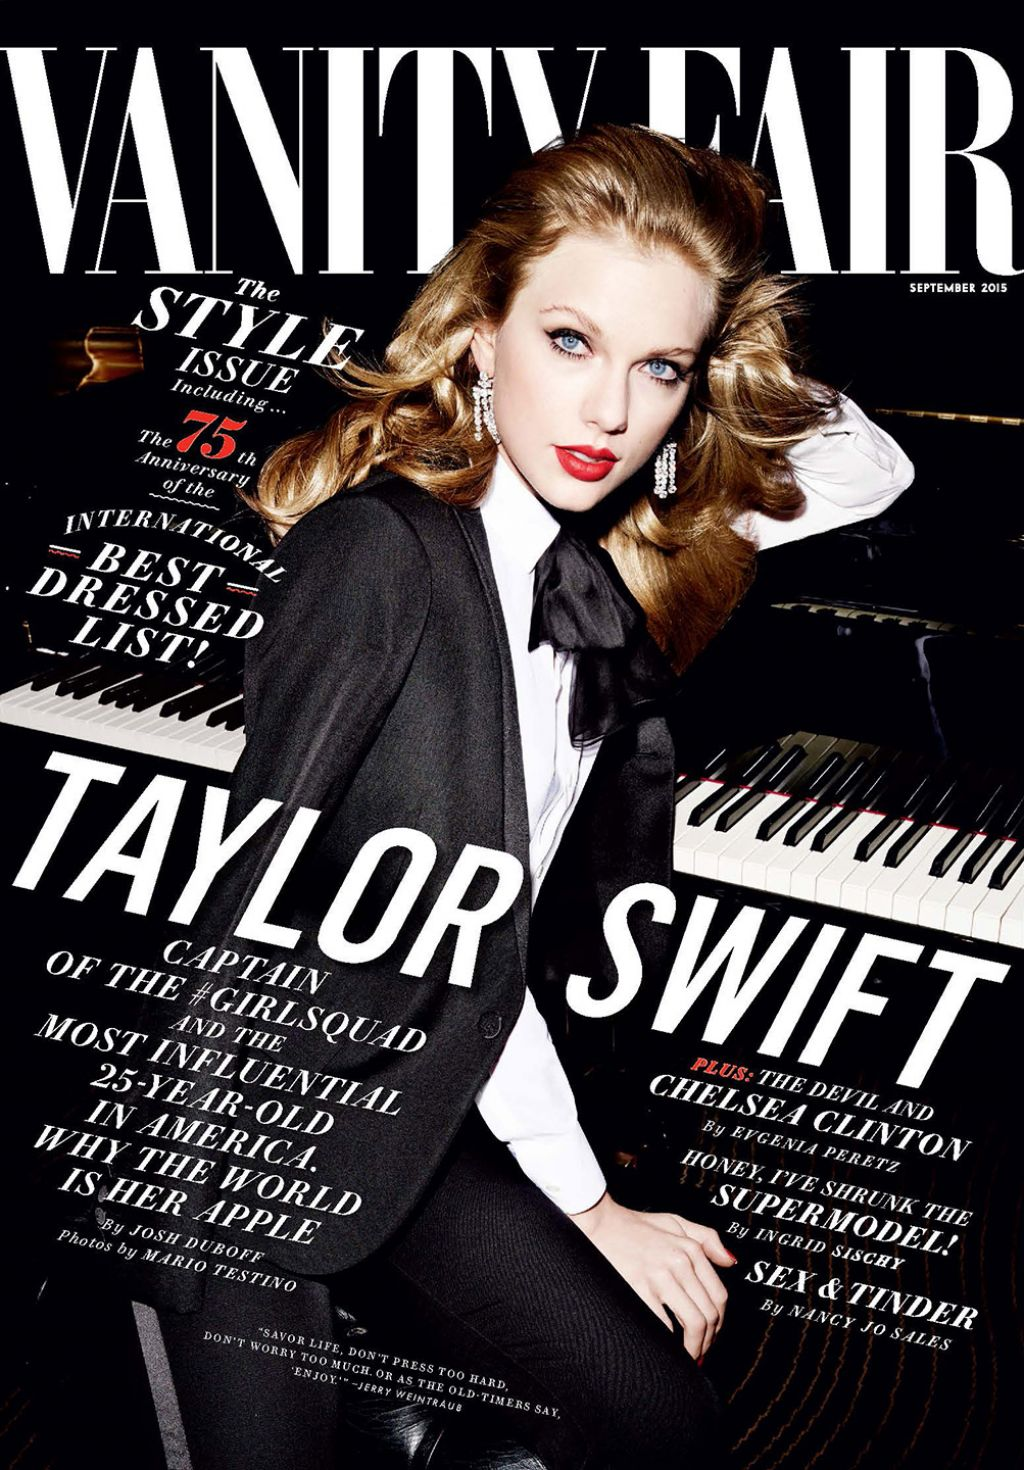 vanity fair magazine cover and more photos september 2015